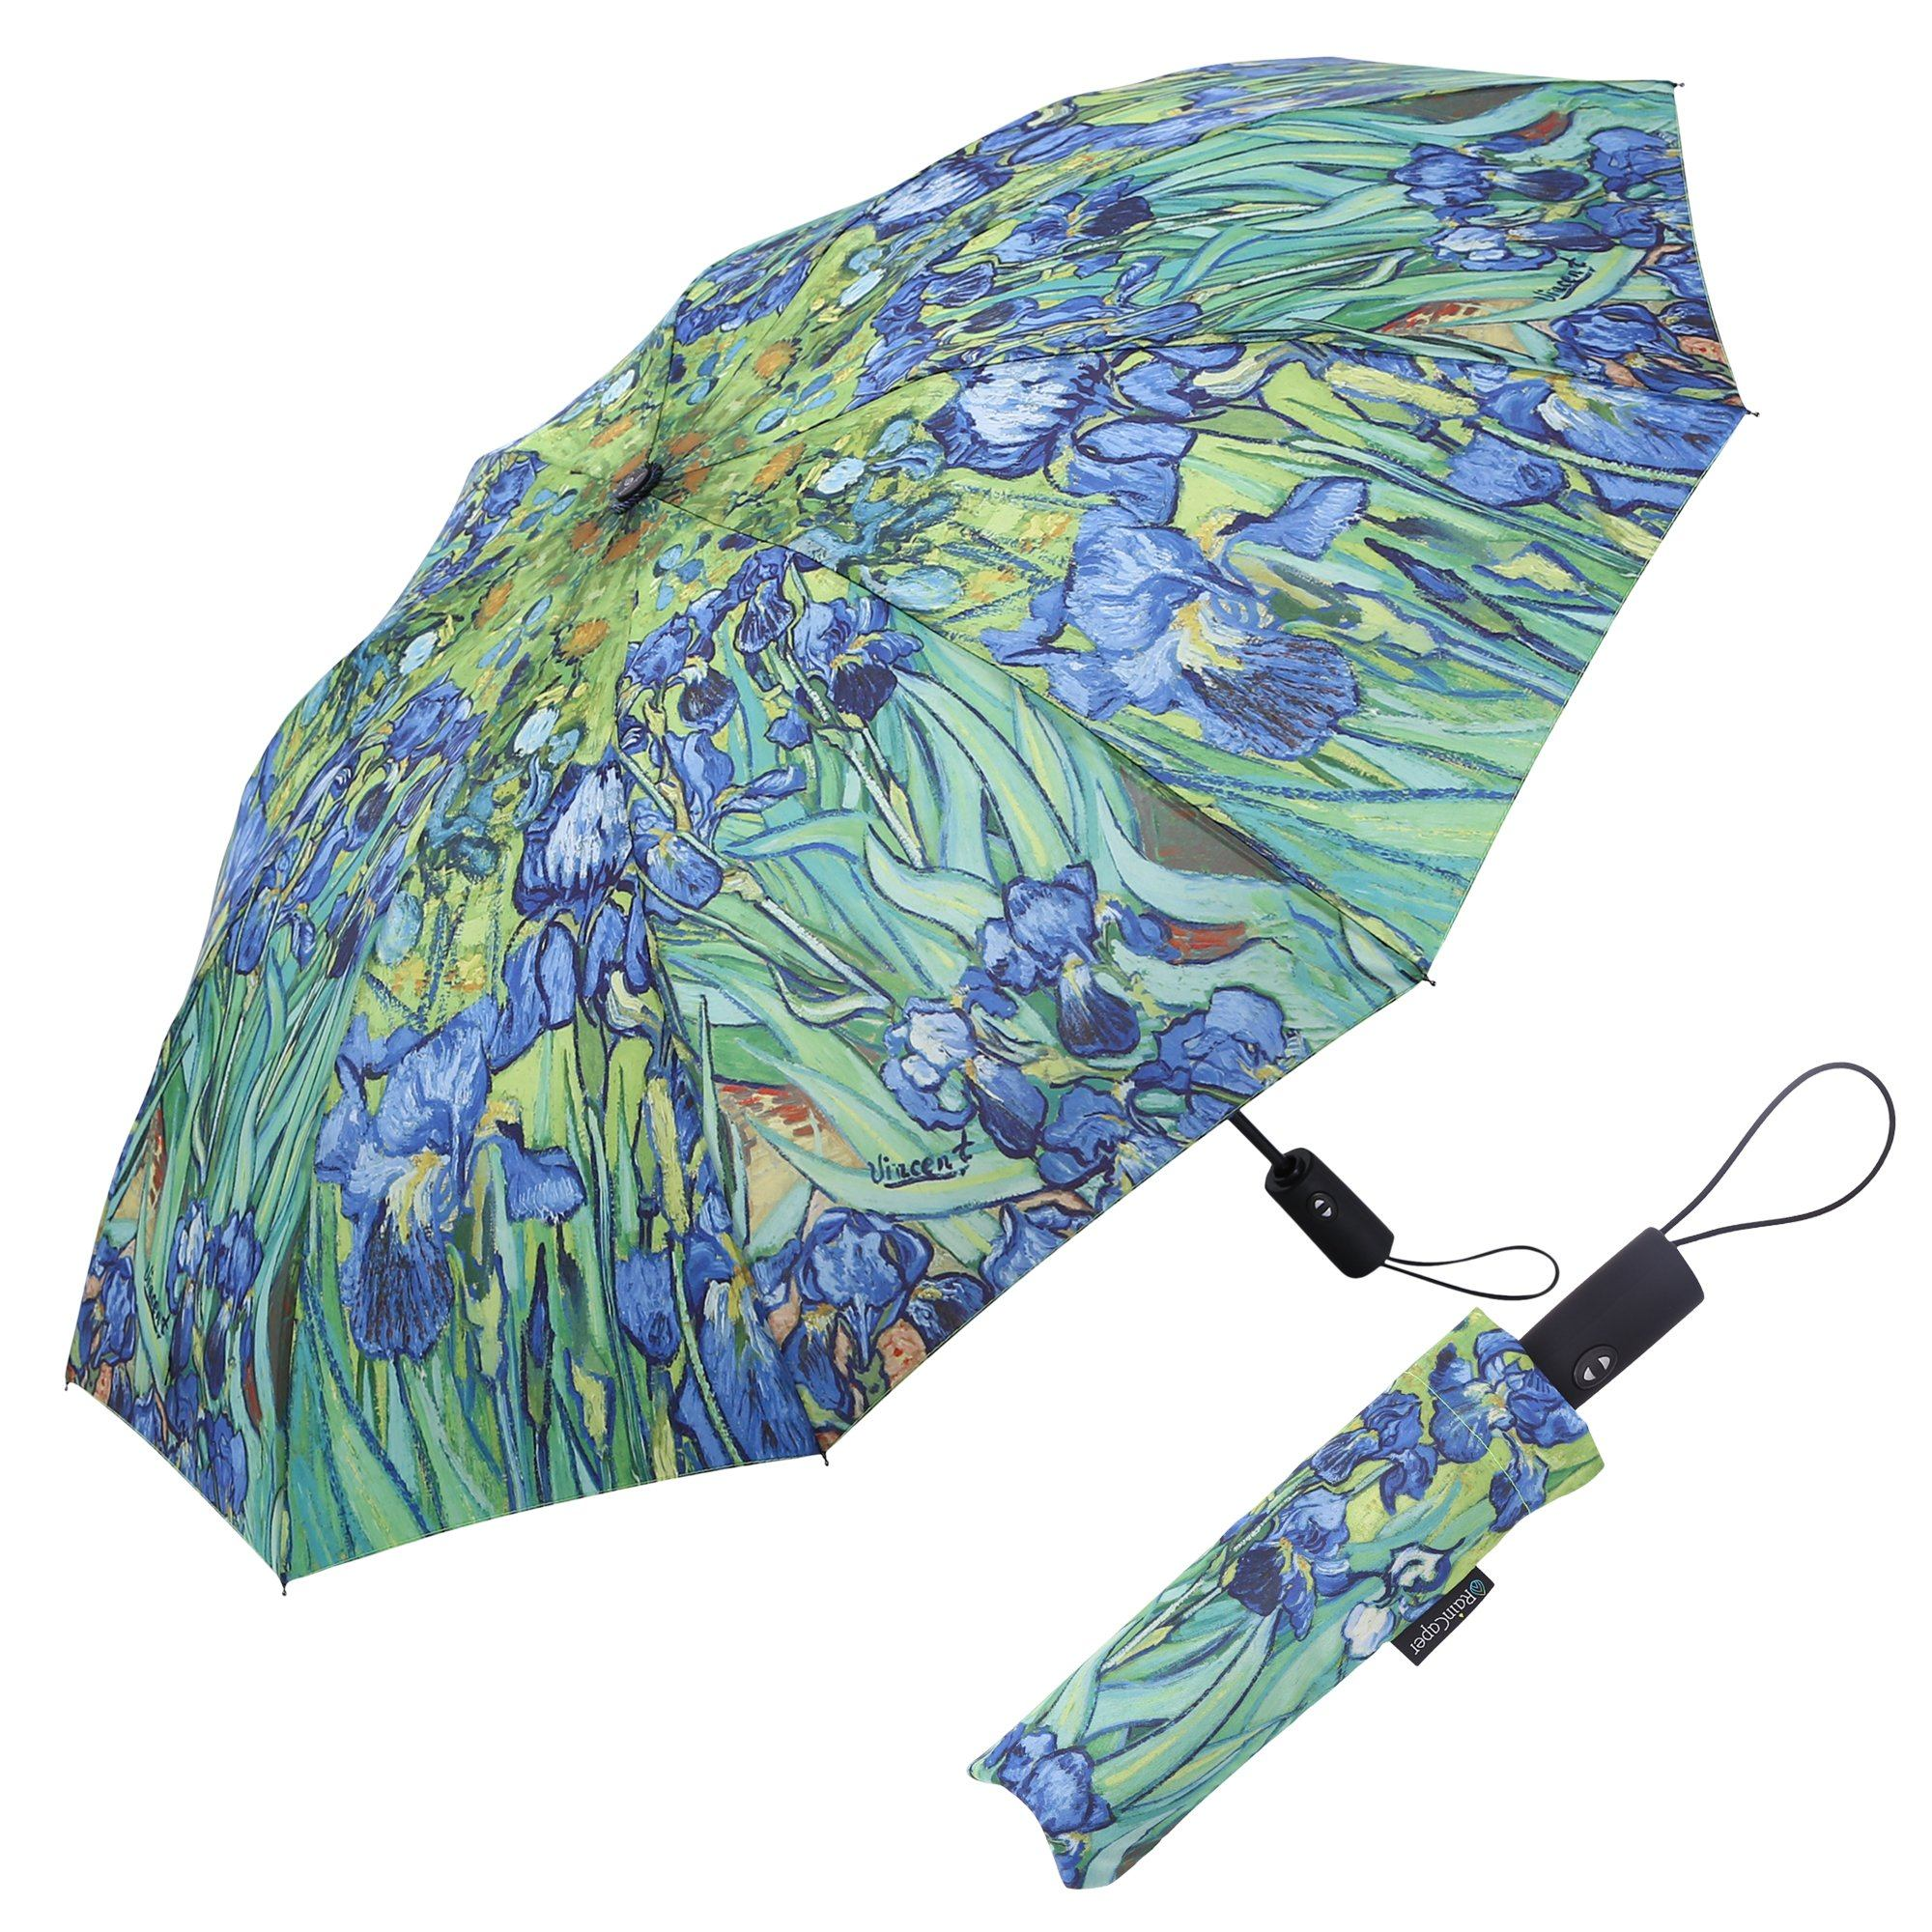 Image of a RainCaper van Gogh Irises folded traveling umbrella shown both open and closed